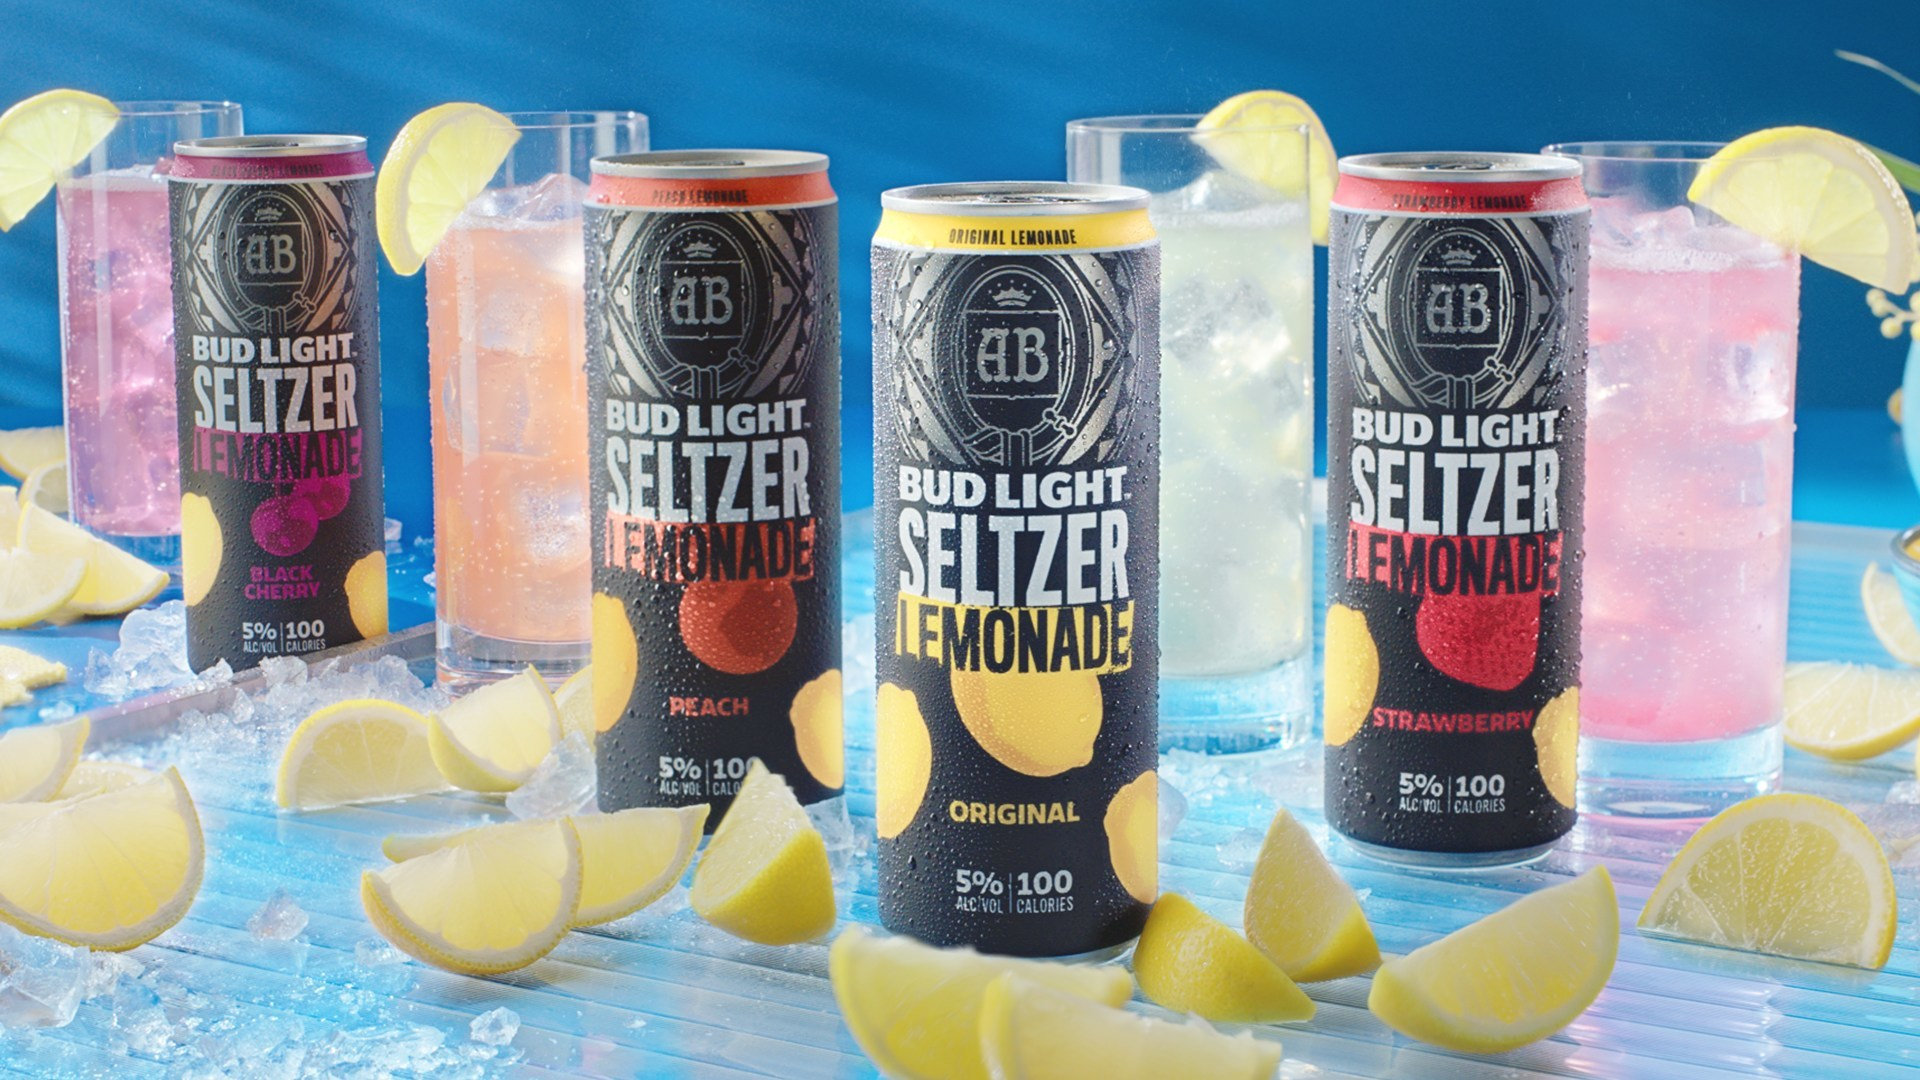 Bud Light Seltzer Expands Product Line-Up With Newest Innovation, Bud Light Seltzer Lemonade